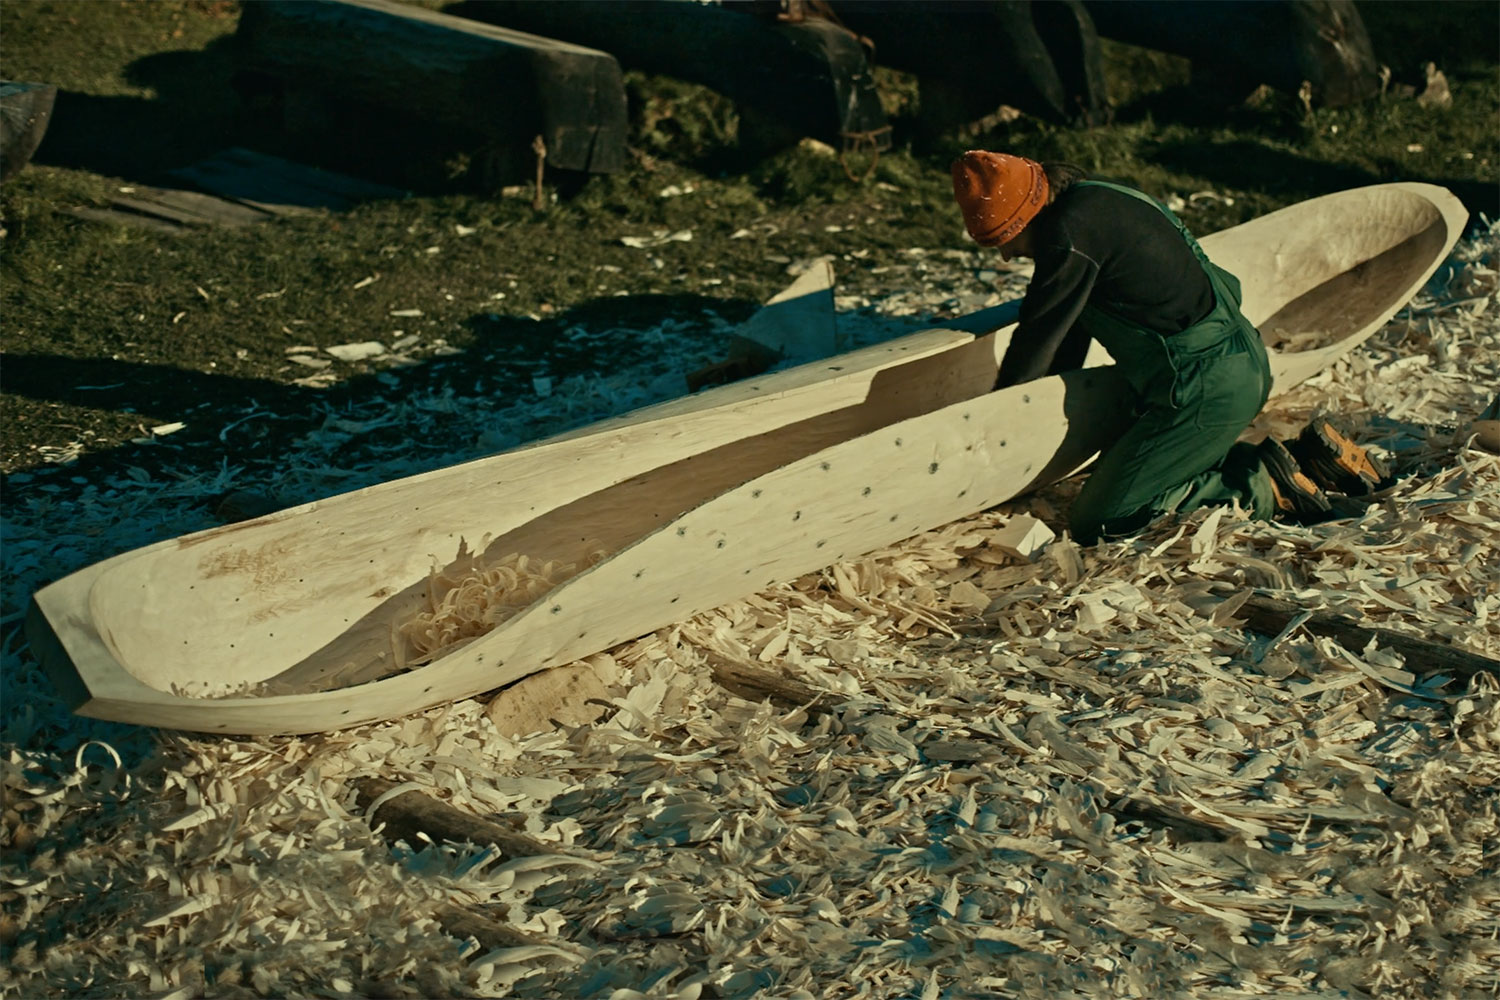 Sit Back Relax And Watch 20 Minutes Of Canoe Building